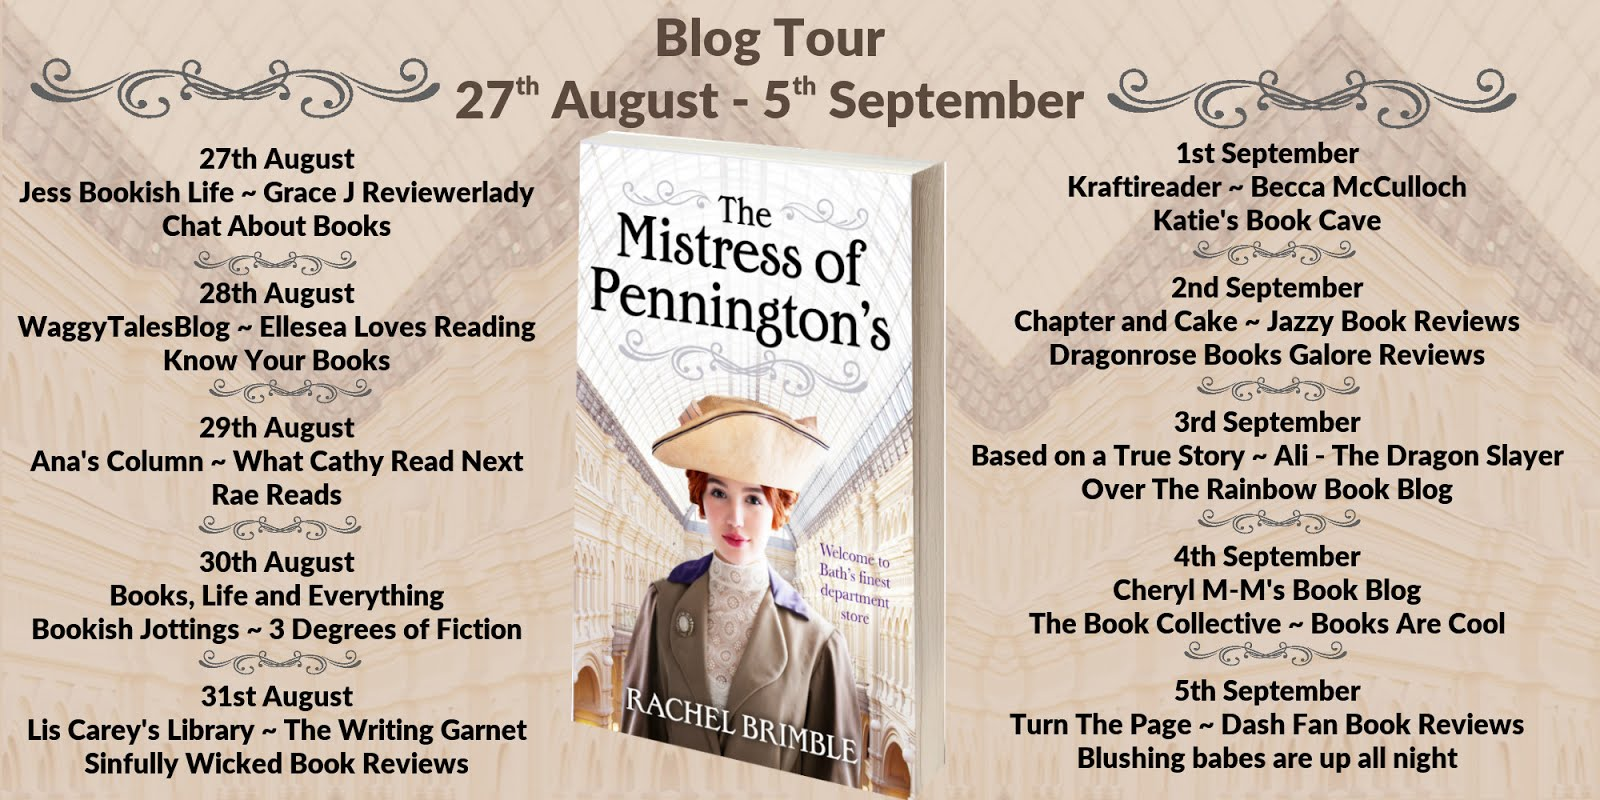 New The Mistress of Pennington's Tour!!